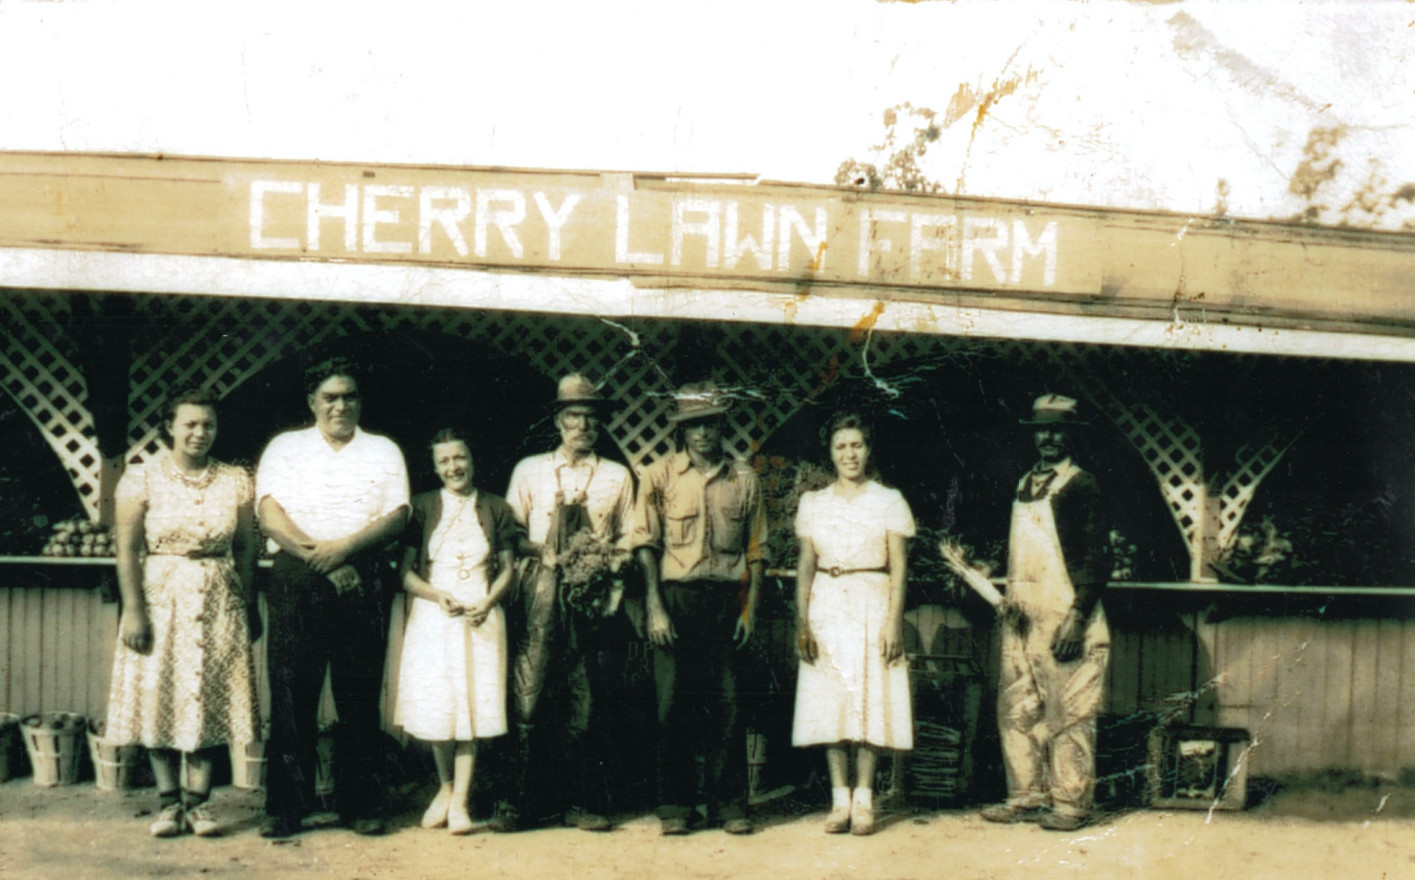 Founders of Cherry Lawn